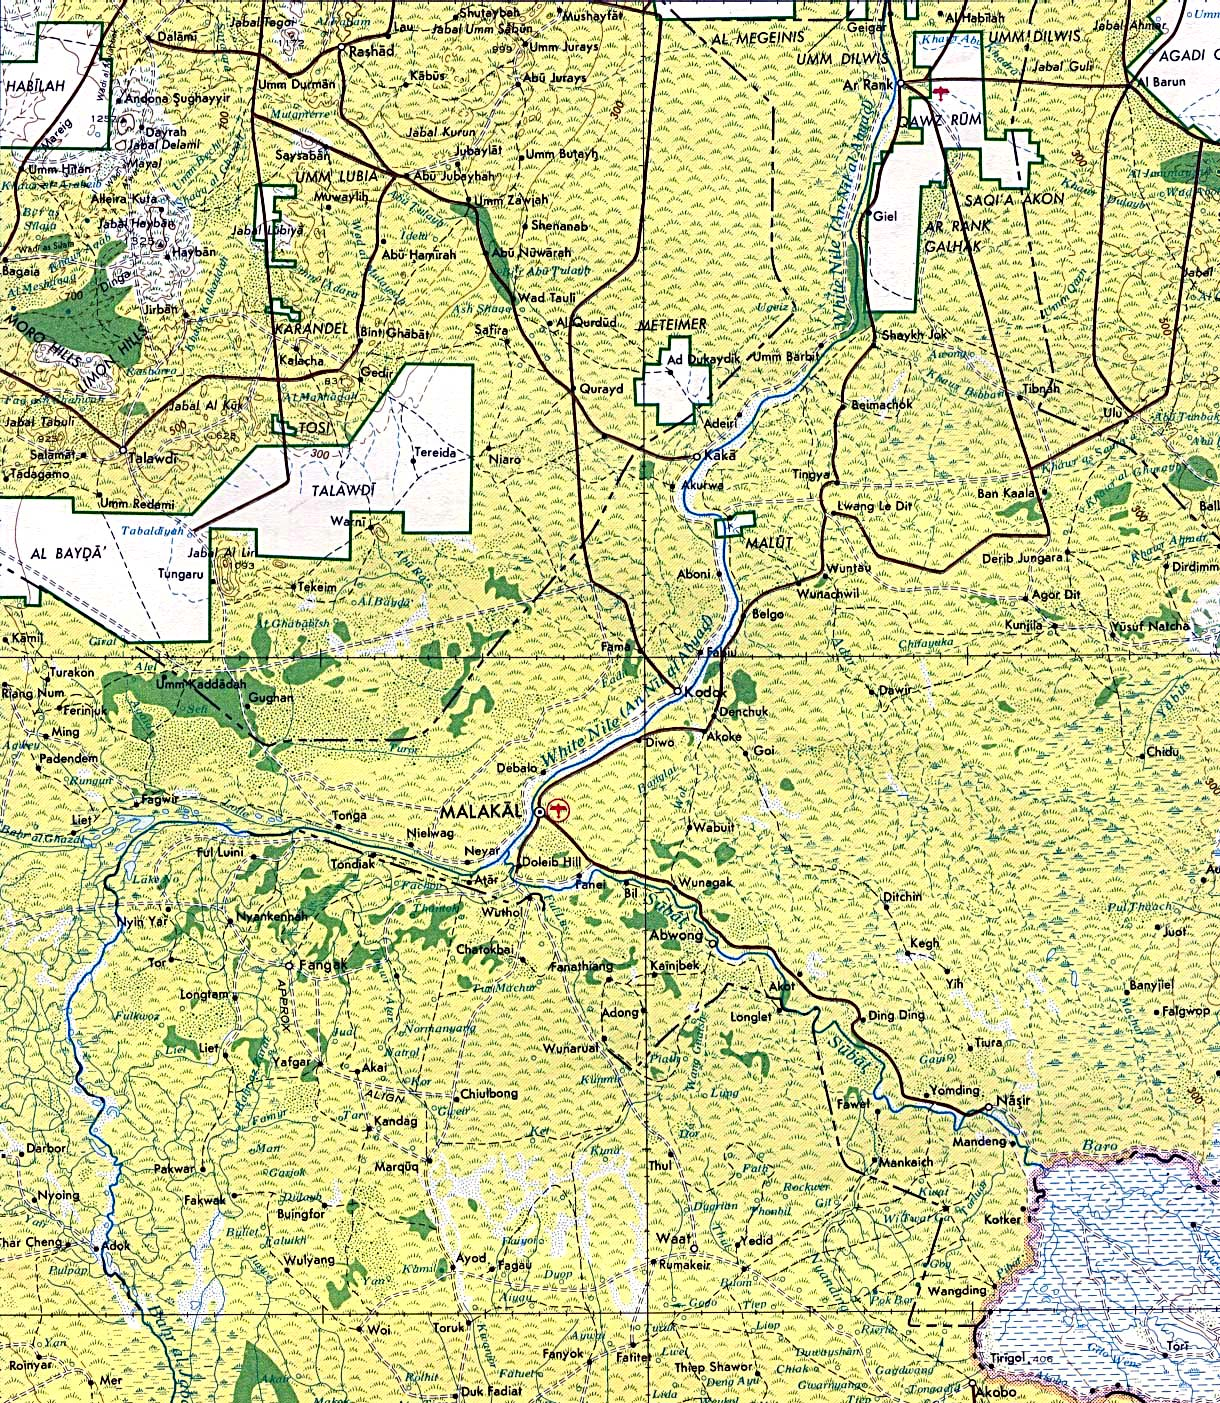 South Sudan Maps - Perry-Castañeda Map Collection - UT Library Online